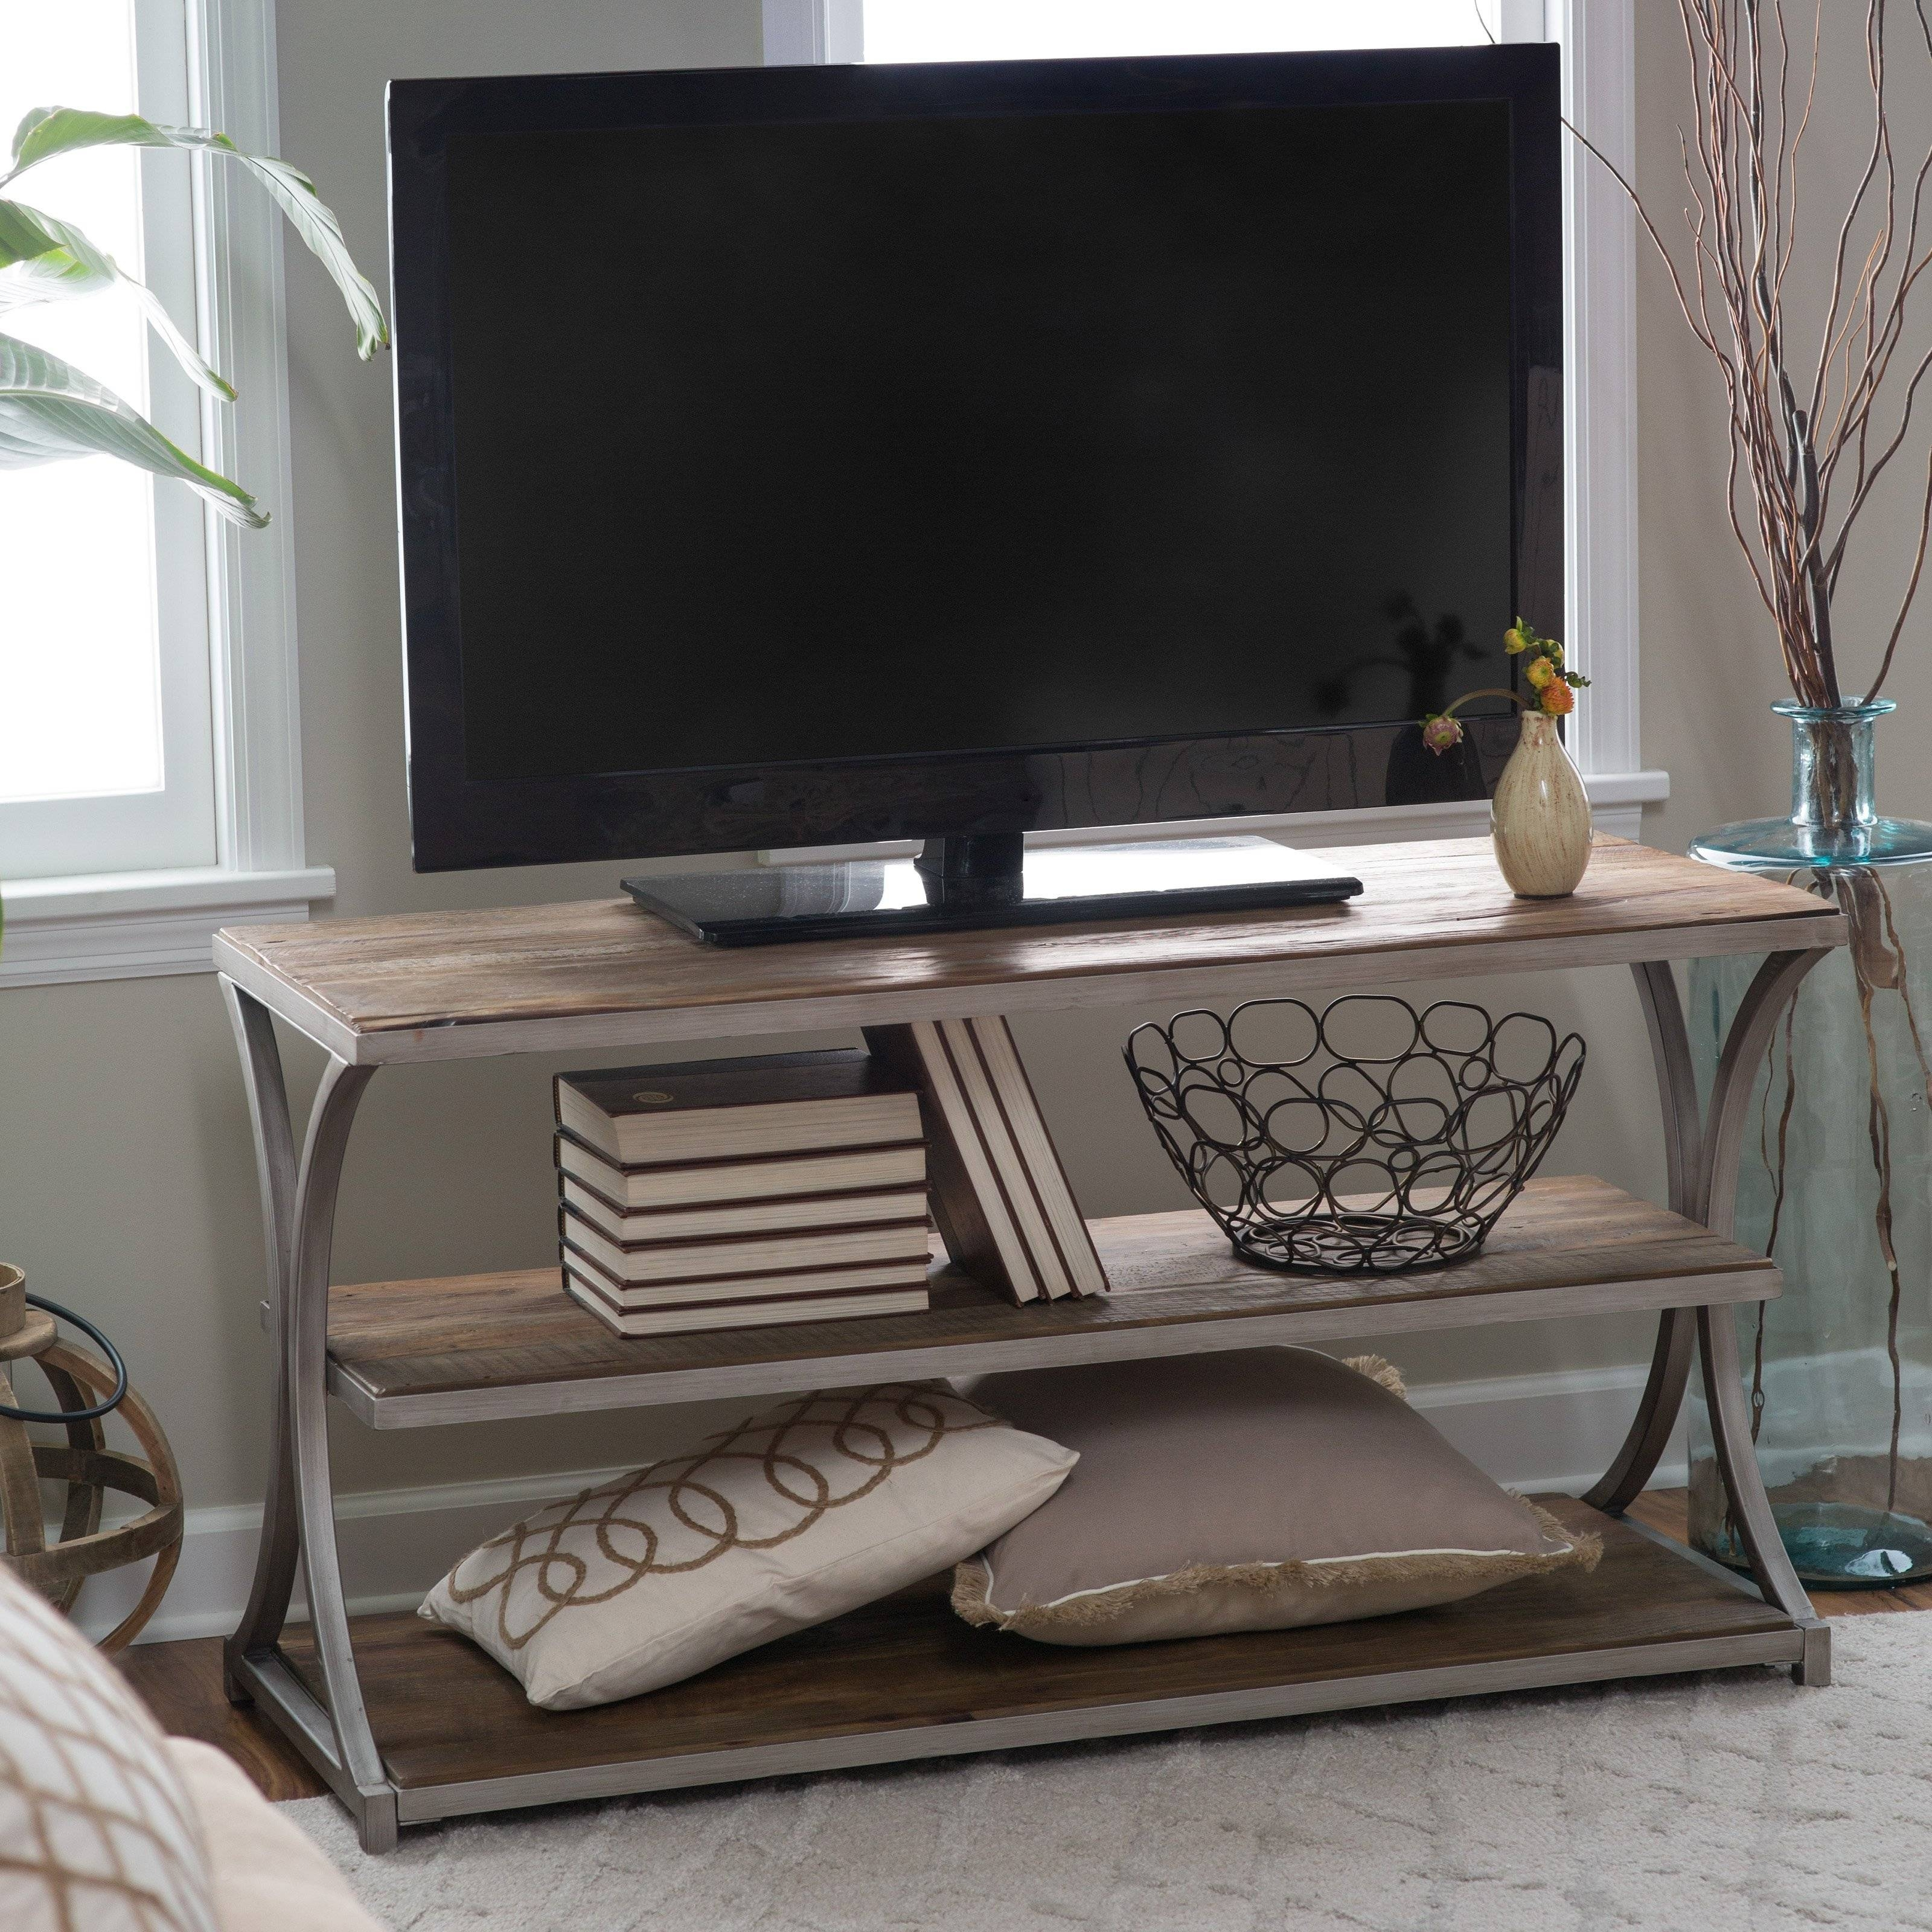 Belham Living Edison Reclaimed Wood Tv Stand | Hayneedle pertaining to Reclaimed Wood and Metal Tv Stands (Image 2 of 15)